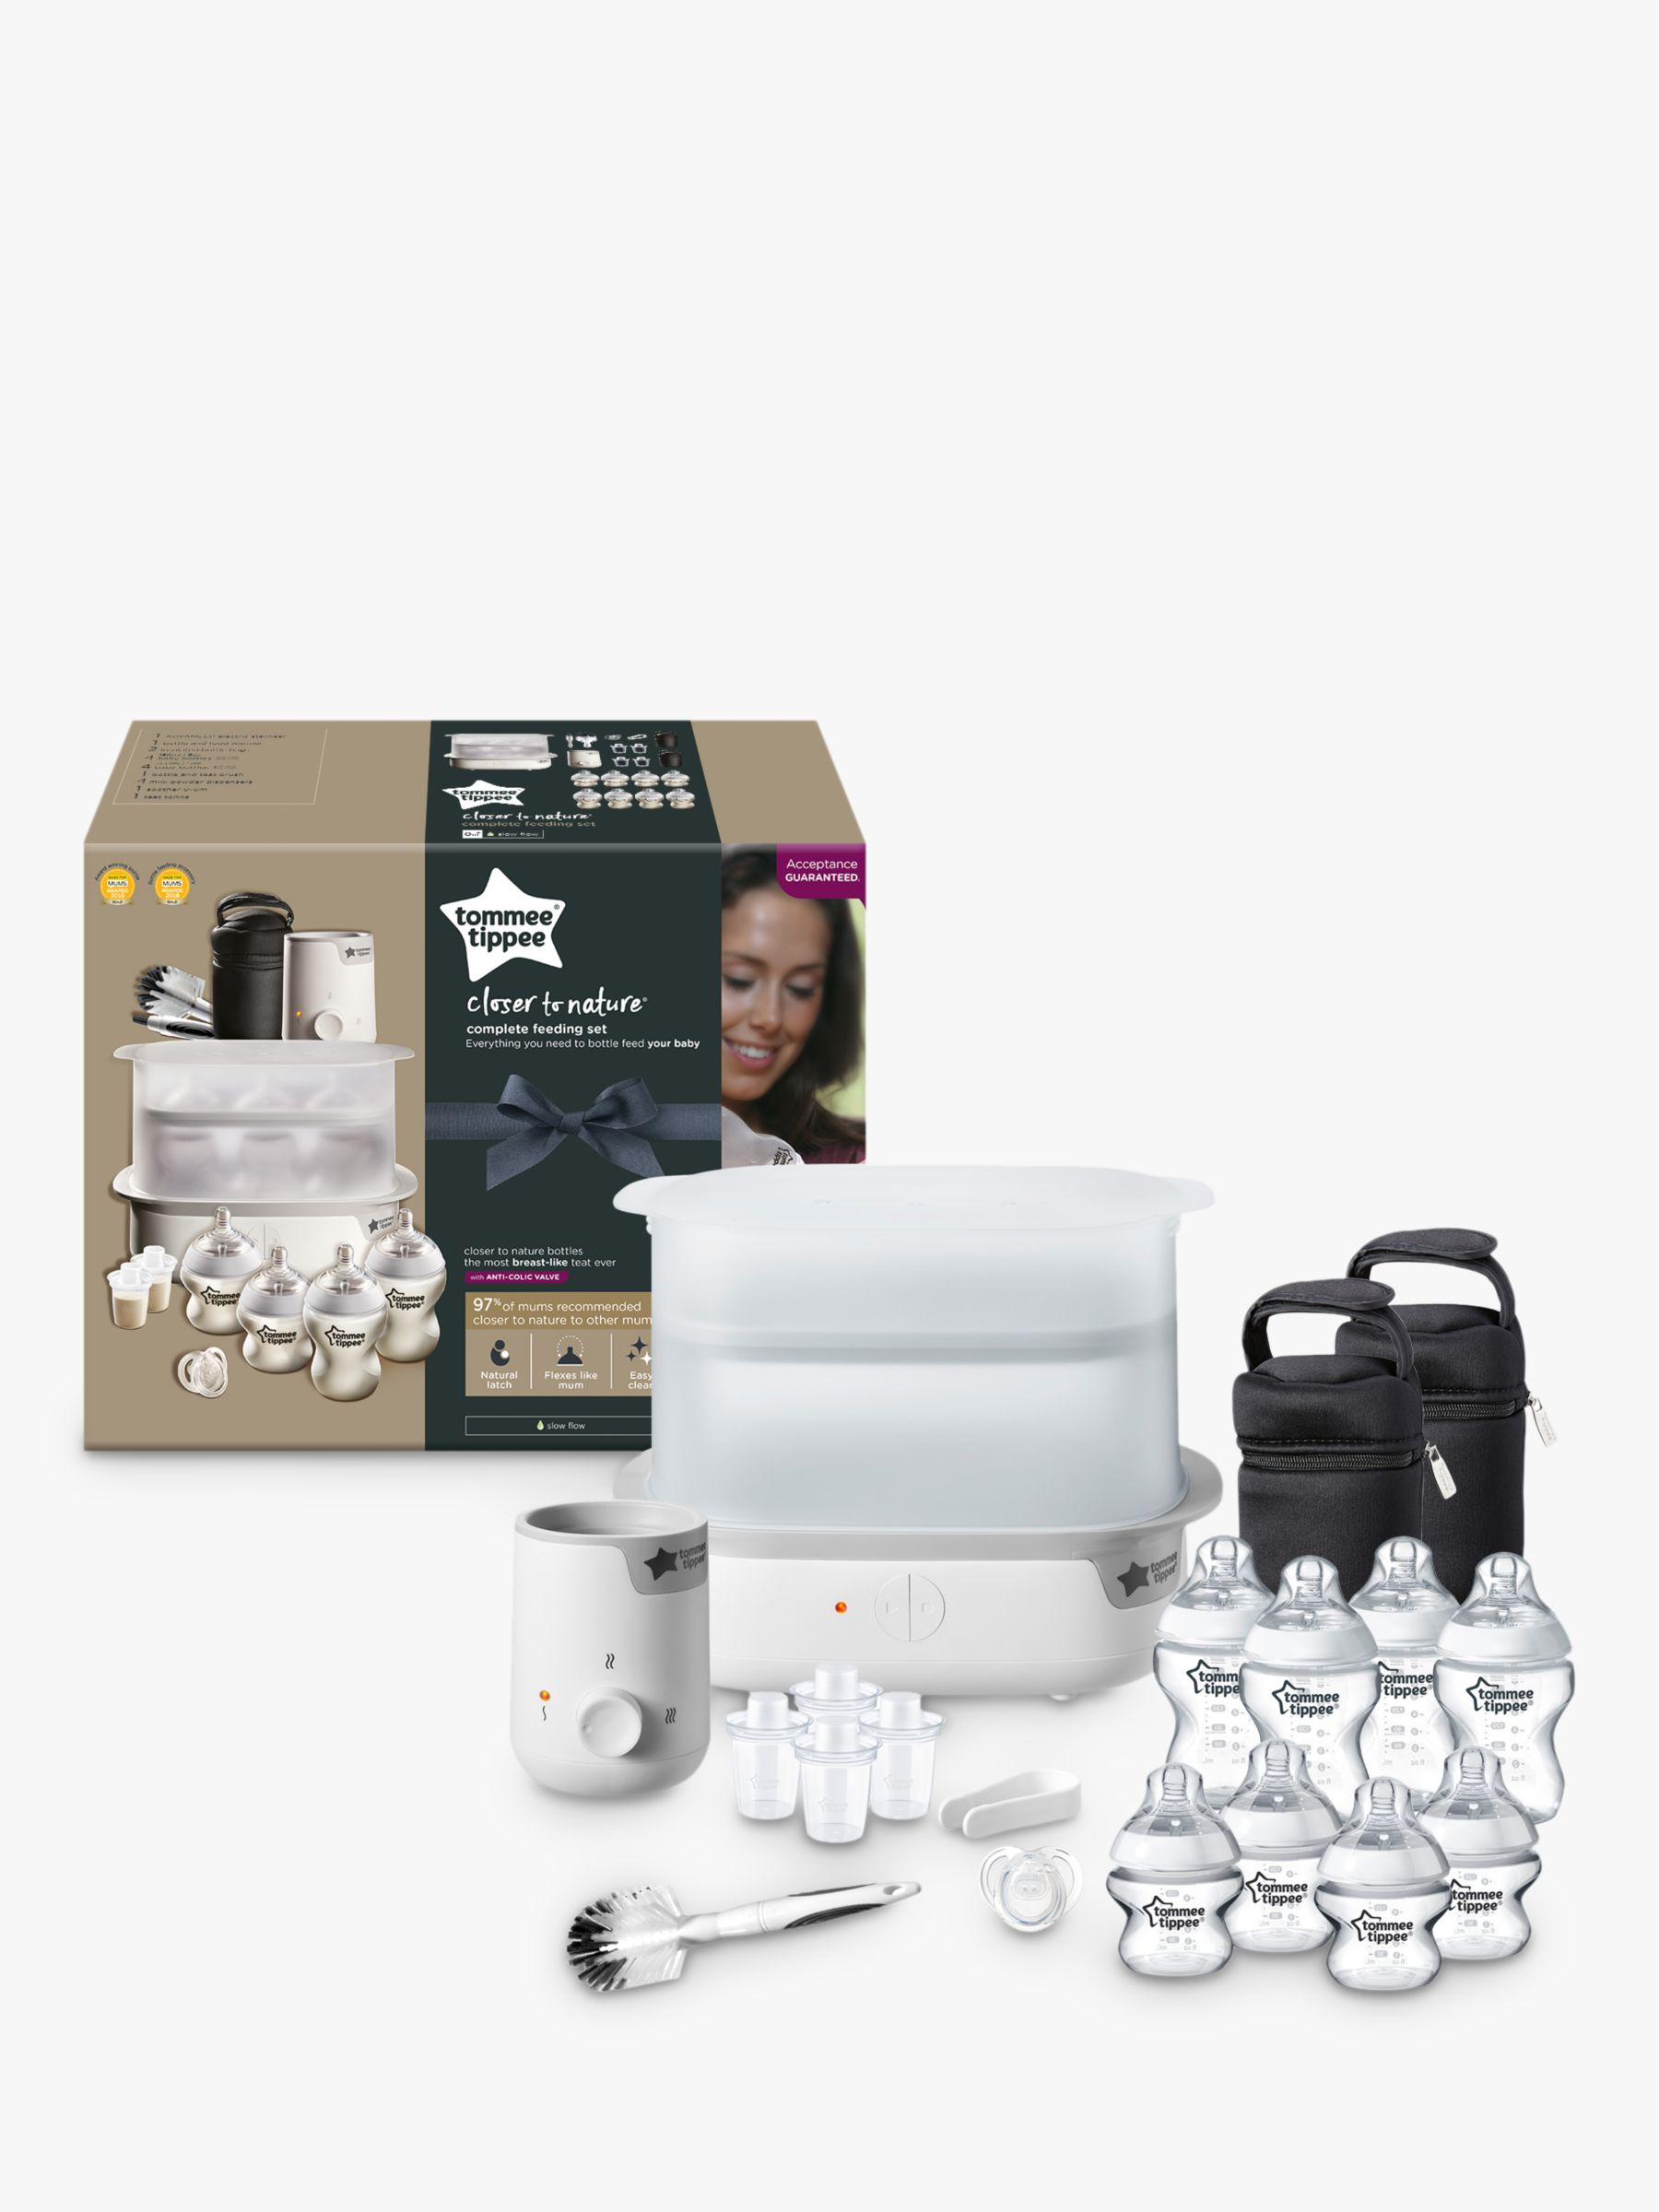 Tommee Tippee Tommee Tippee Closer To Nature Complete Feeding Set, White